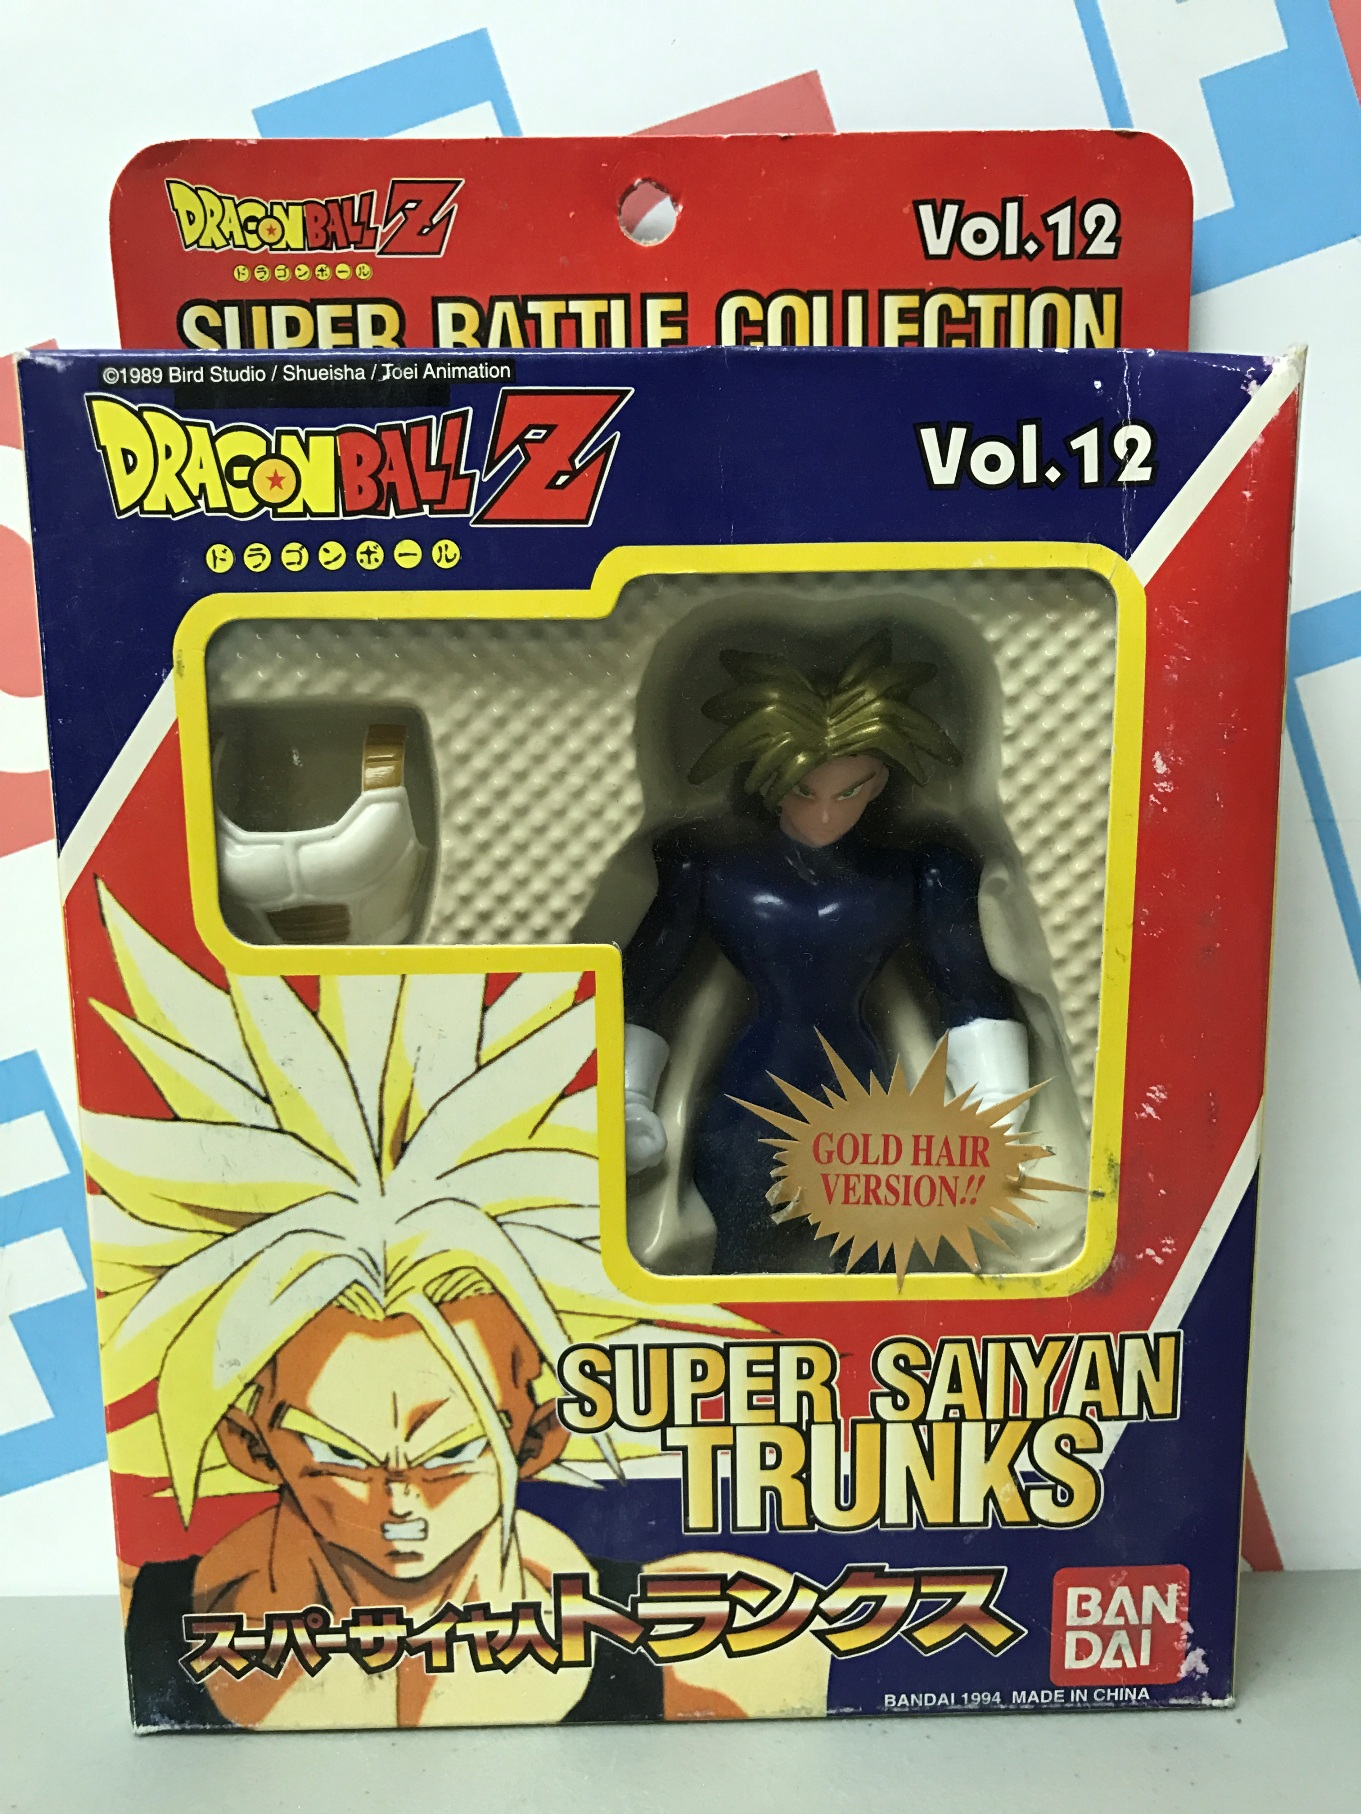 12: Super Saiyan Trunks